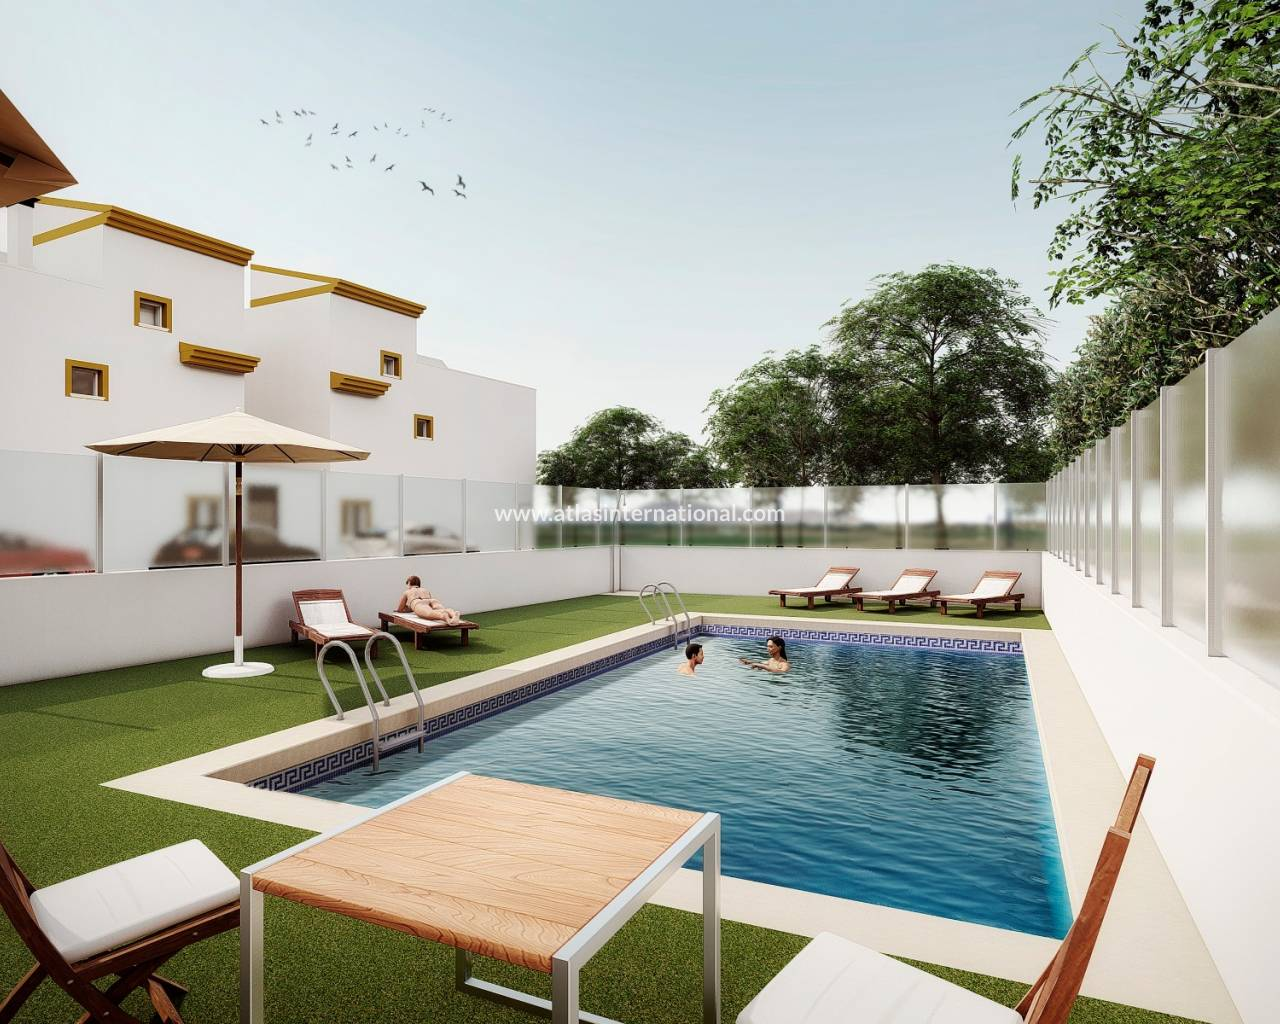 Stadshus - New Build - Torre Pacheco - Torre Pacheco